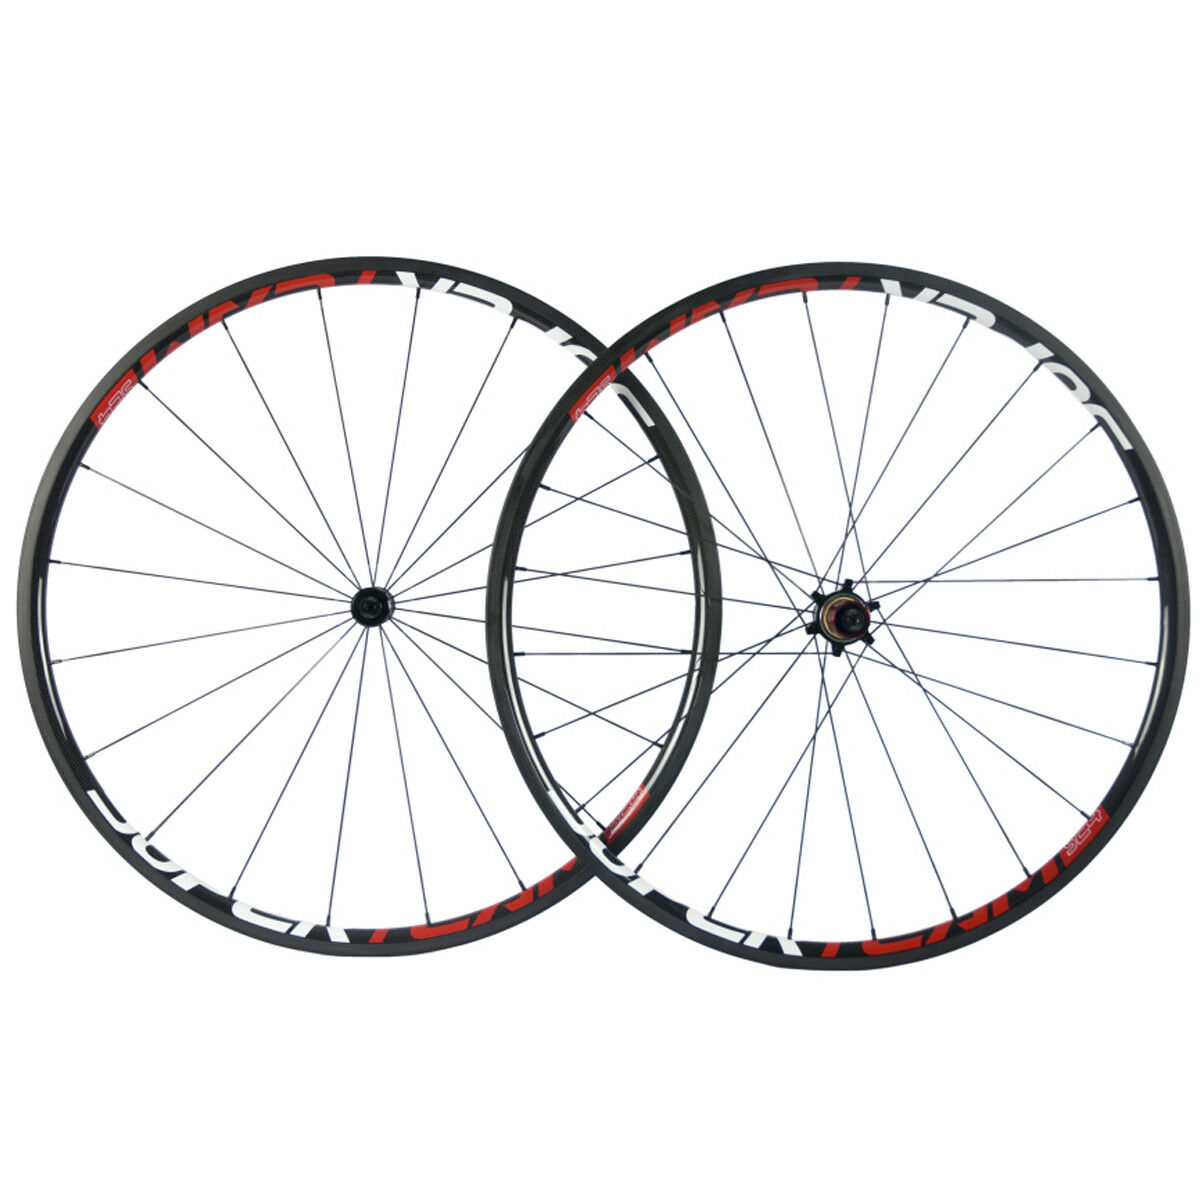 Light 24mm Depth 23mm Width Carbon Wheels Road Bike Superteam Climbing Wheelset